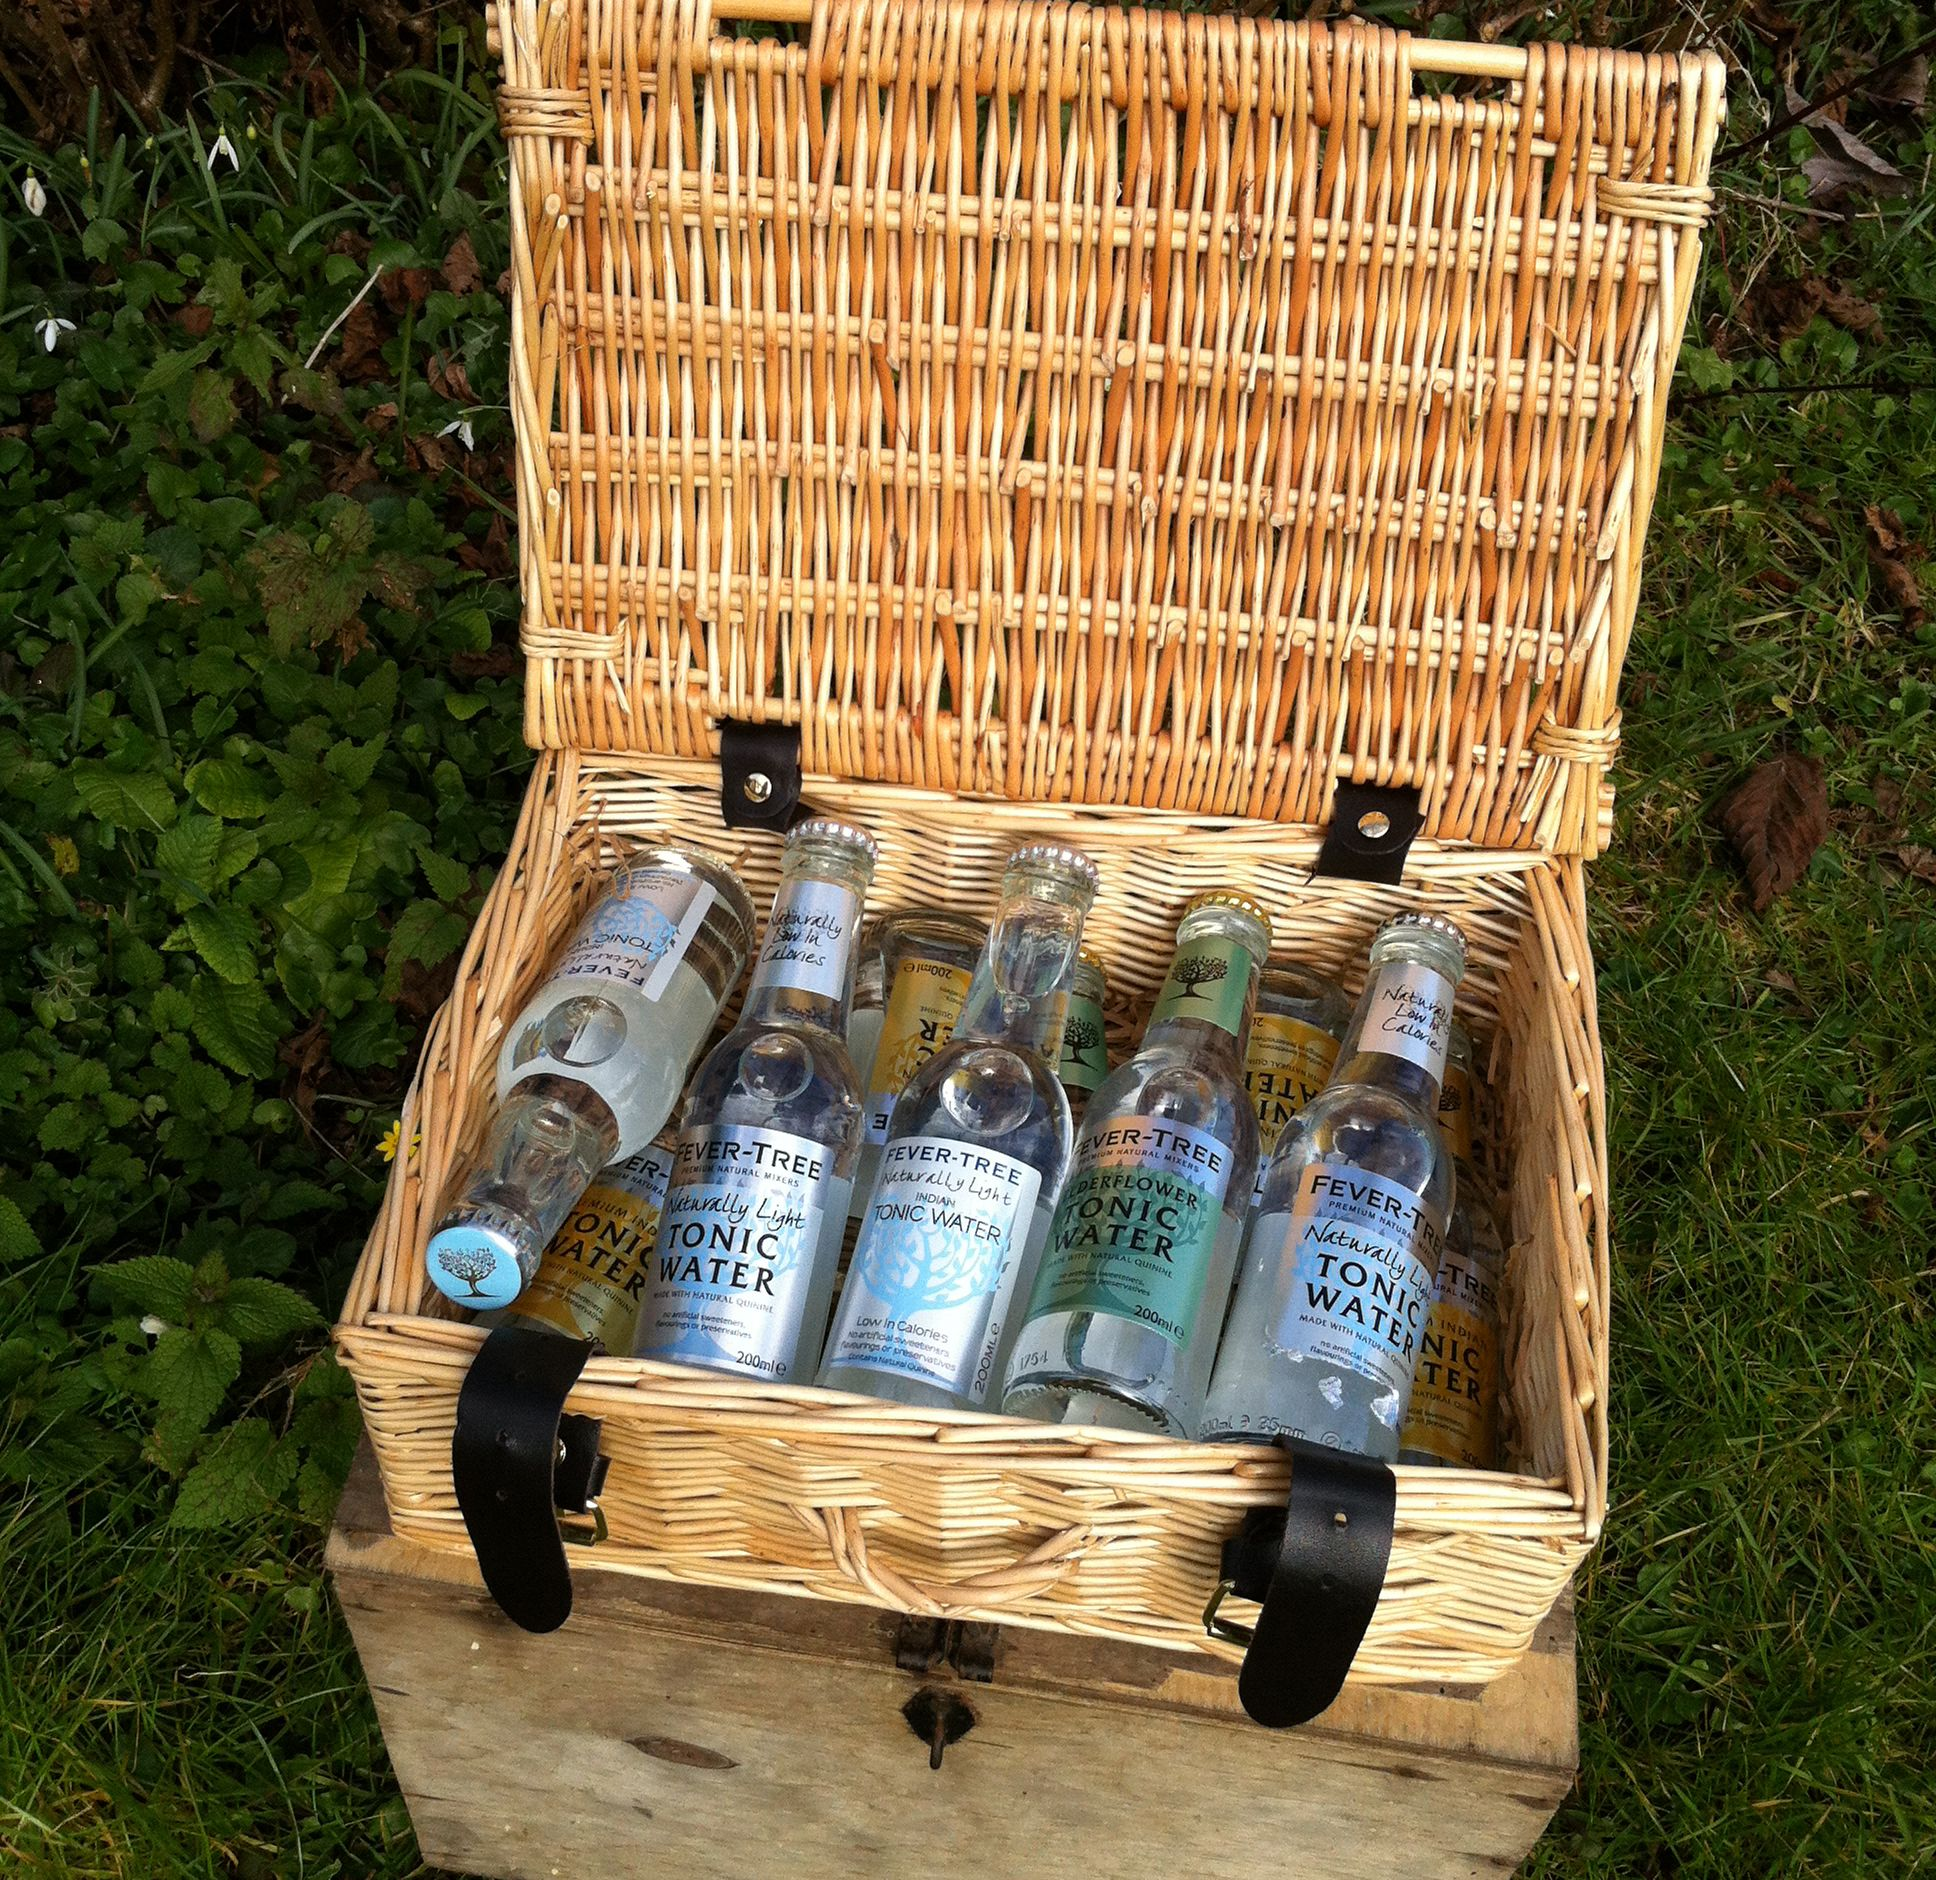 Enjoy An Outside Adventure With #FeverTreeSummer At These 4 Nature Reserve photo